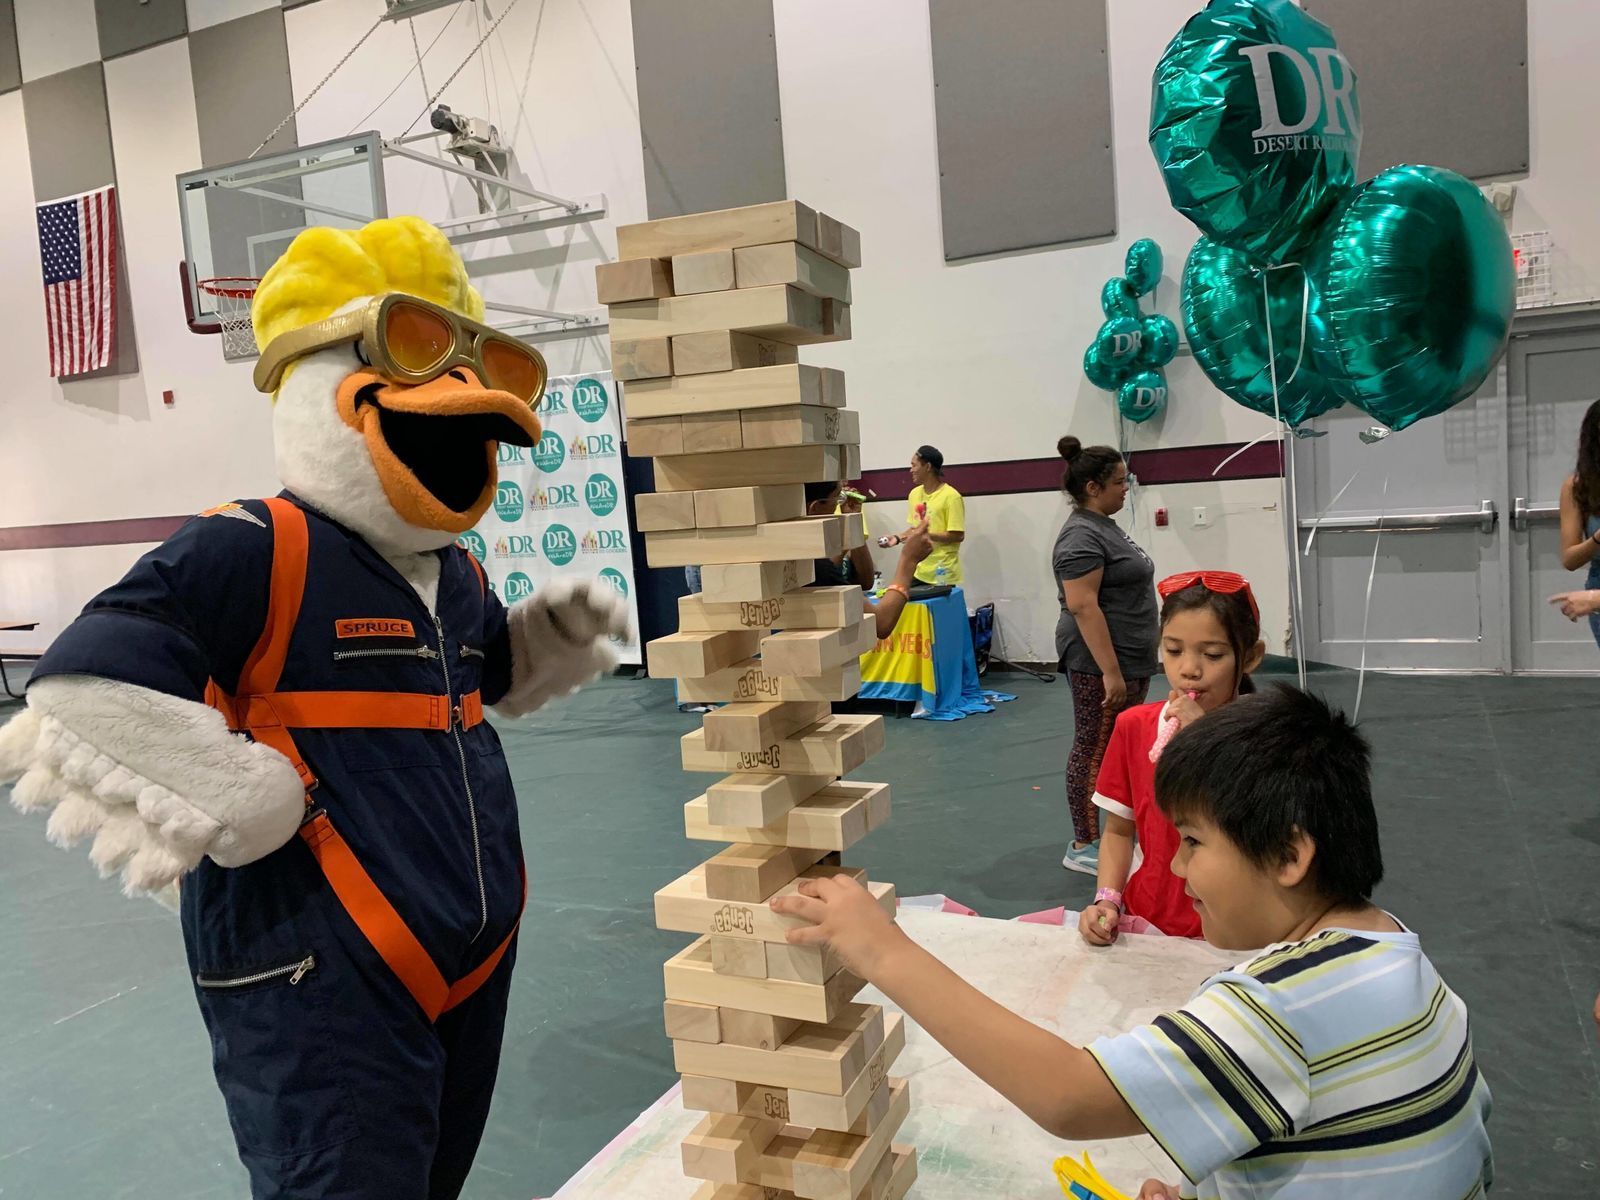 Desert Radiology and City Impact Center hosted a summer fair designed to give economically challenged families the chance to have a summer vacation with a summer fair. (Courtesy Maddie Skains)